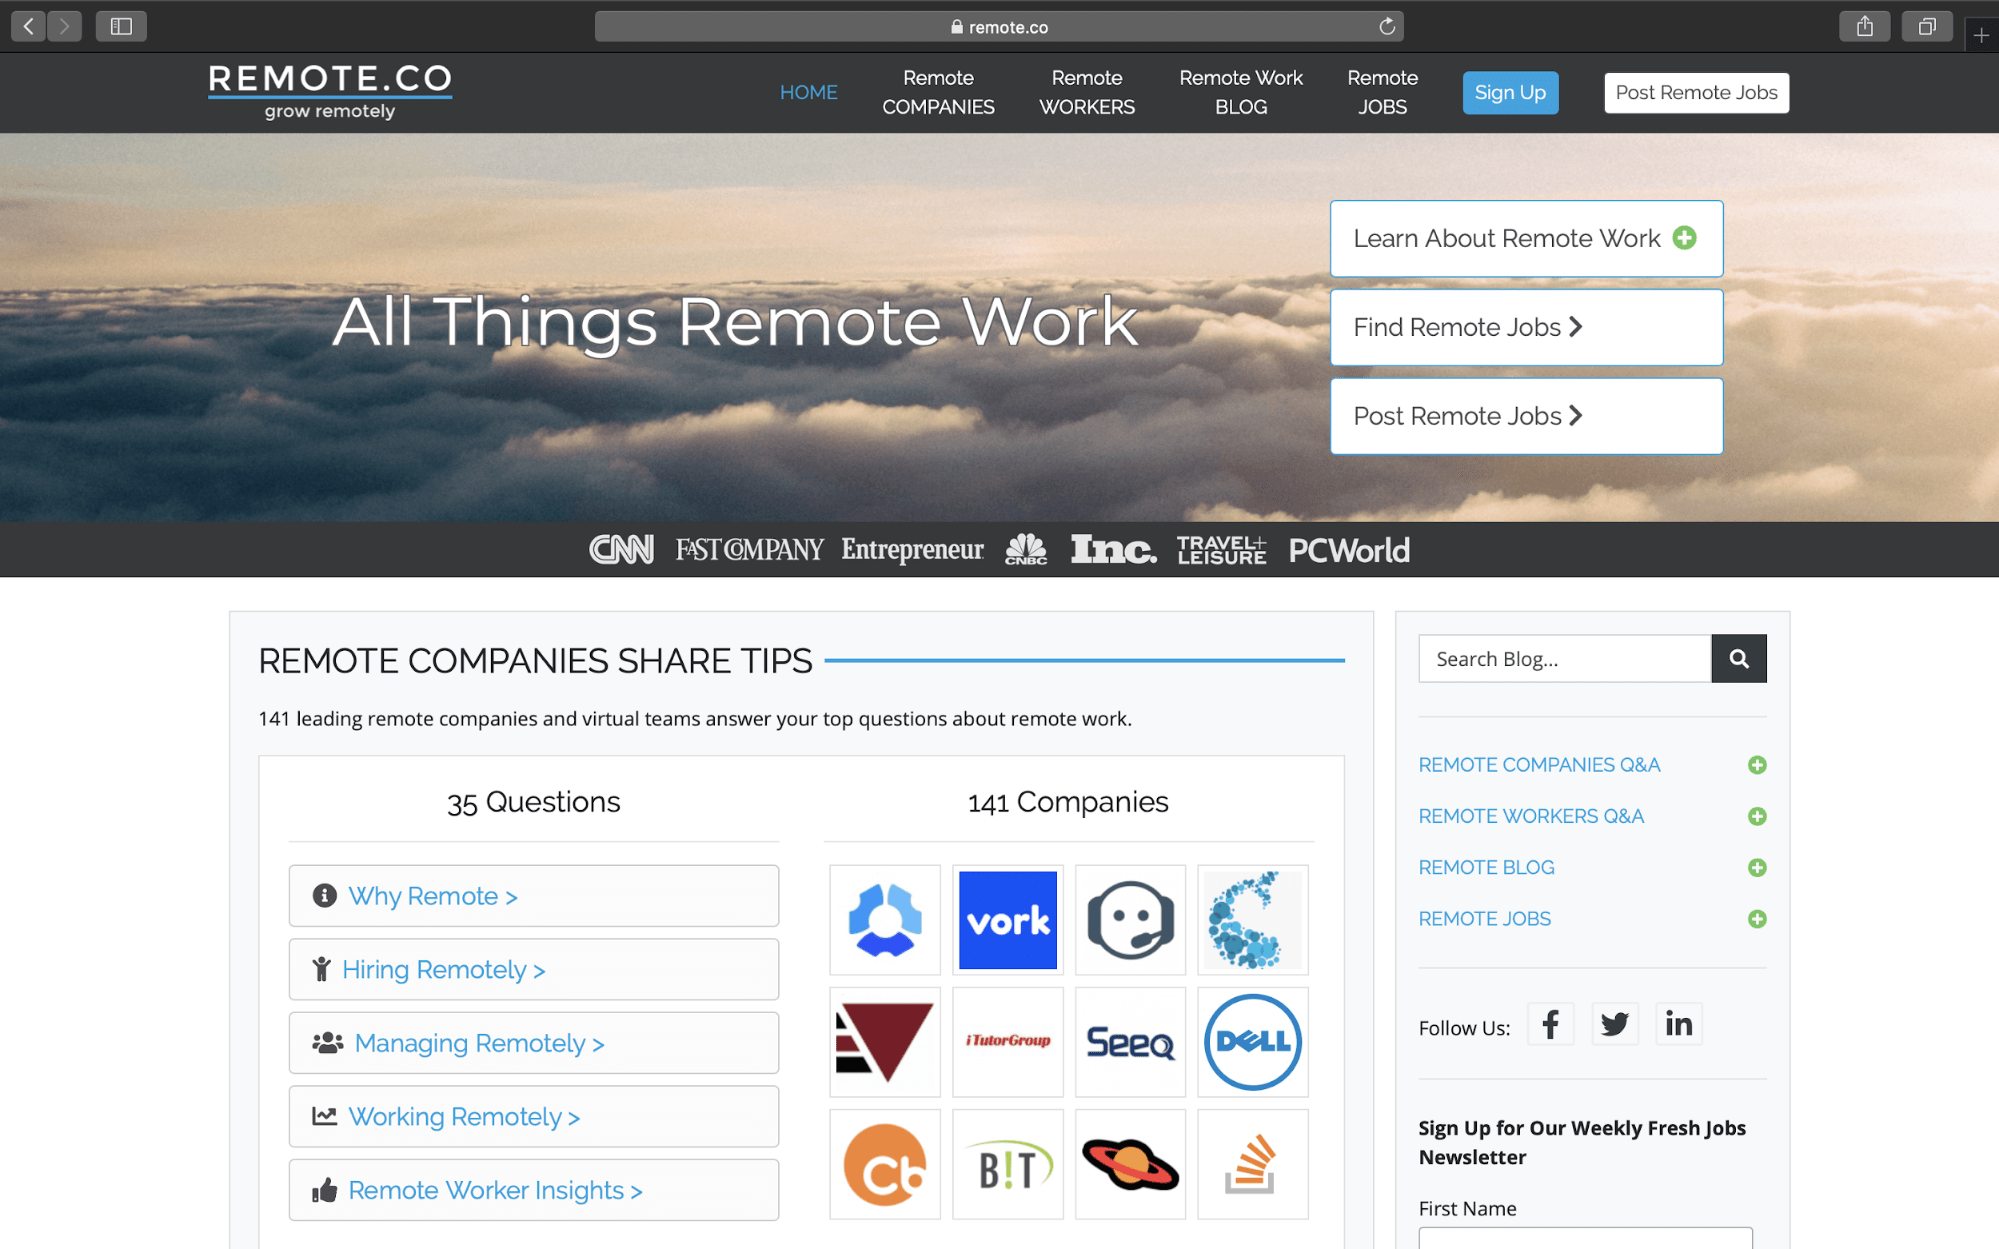 remote.co website homepage